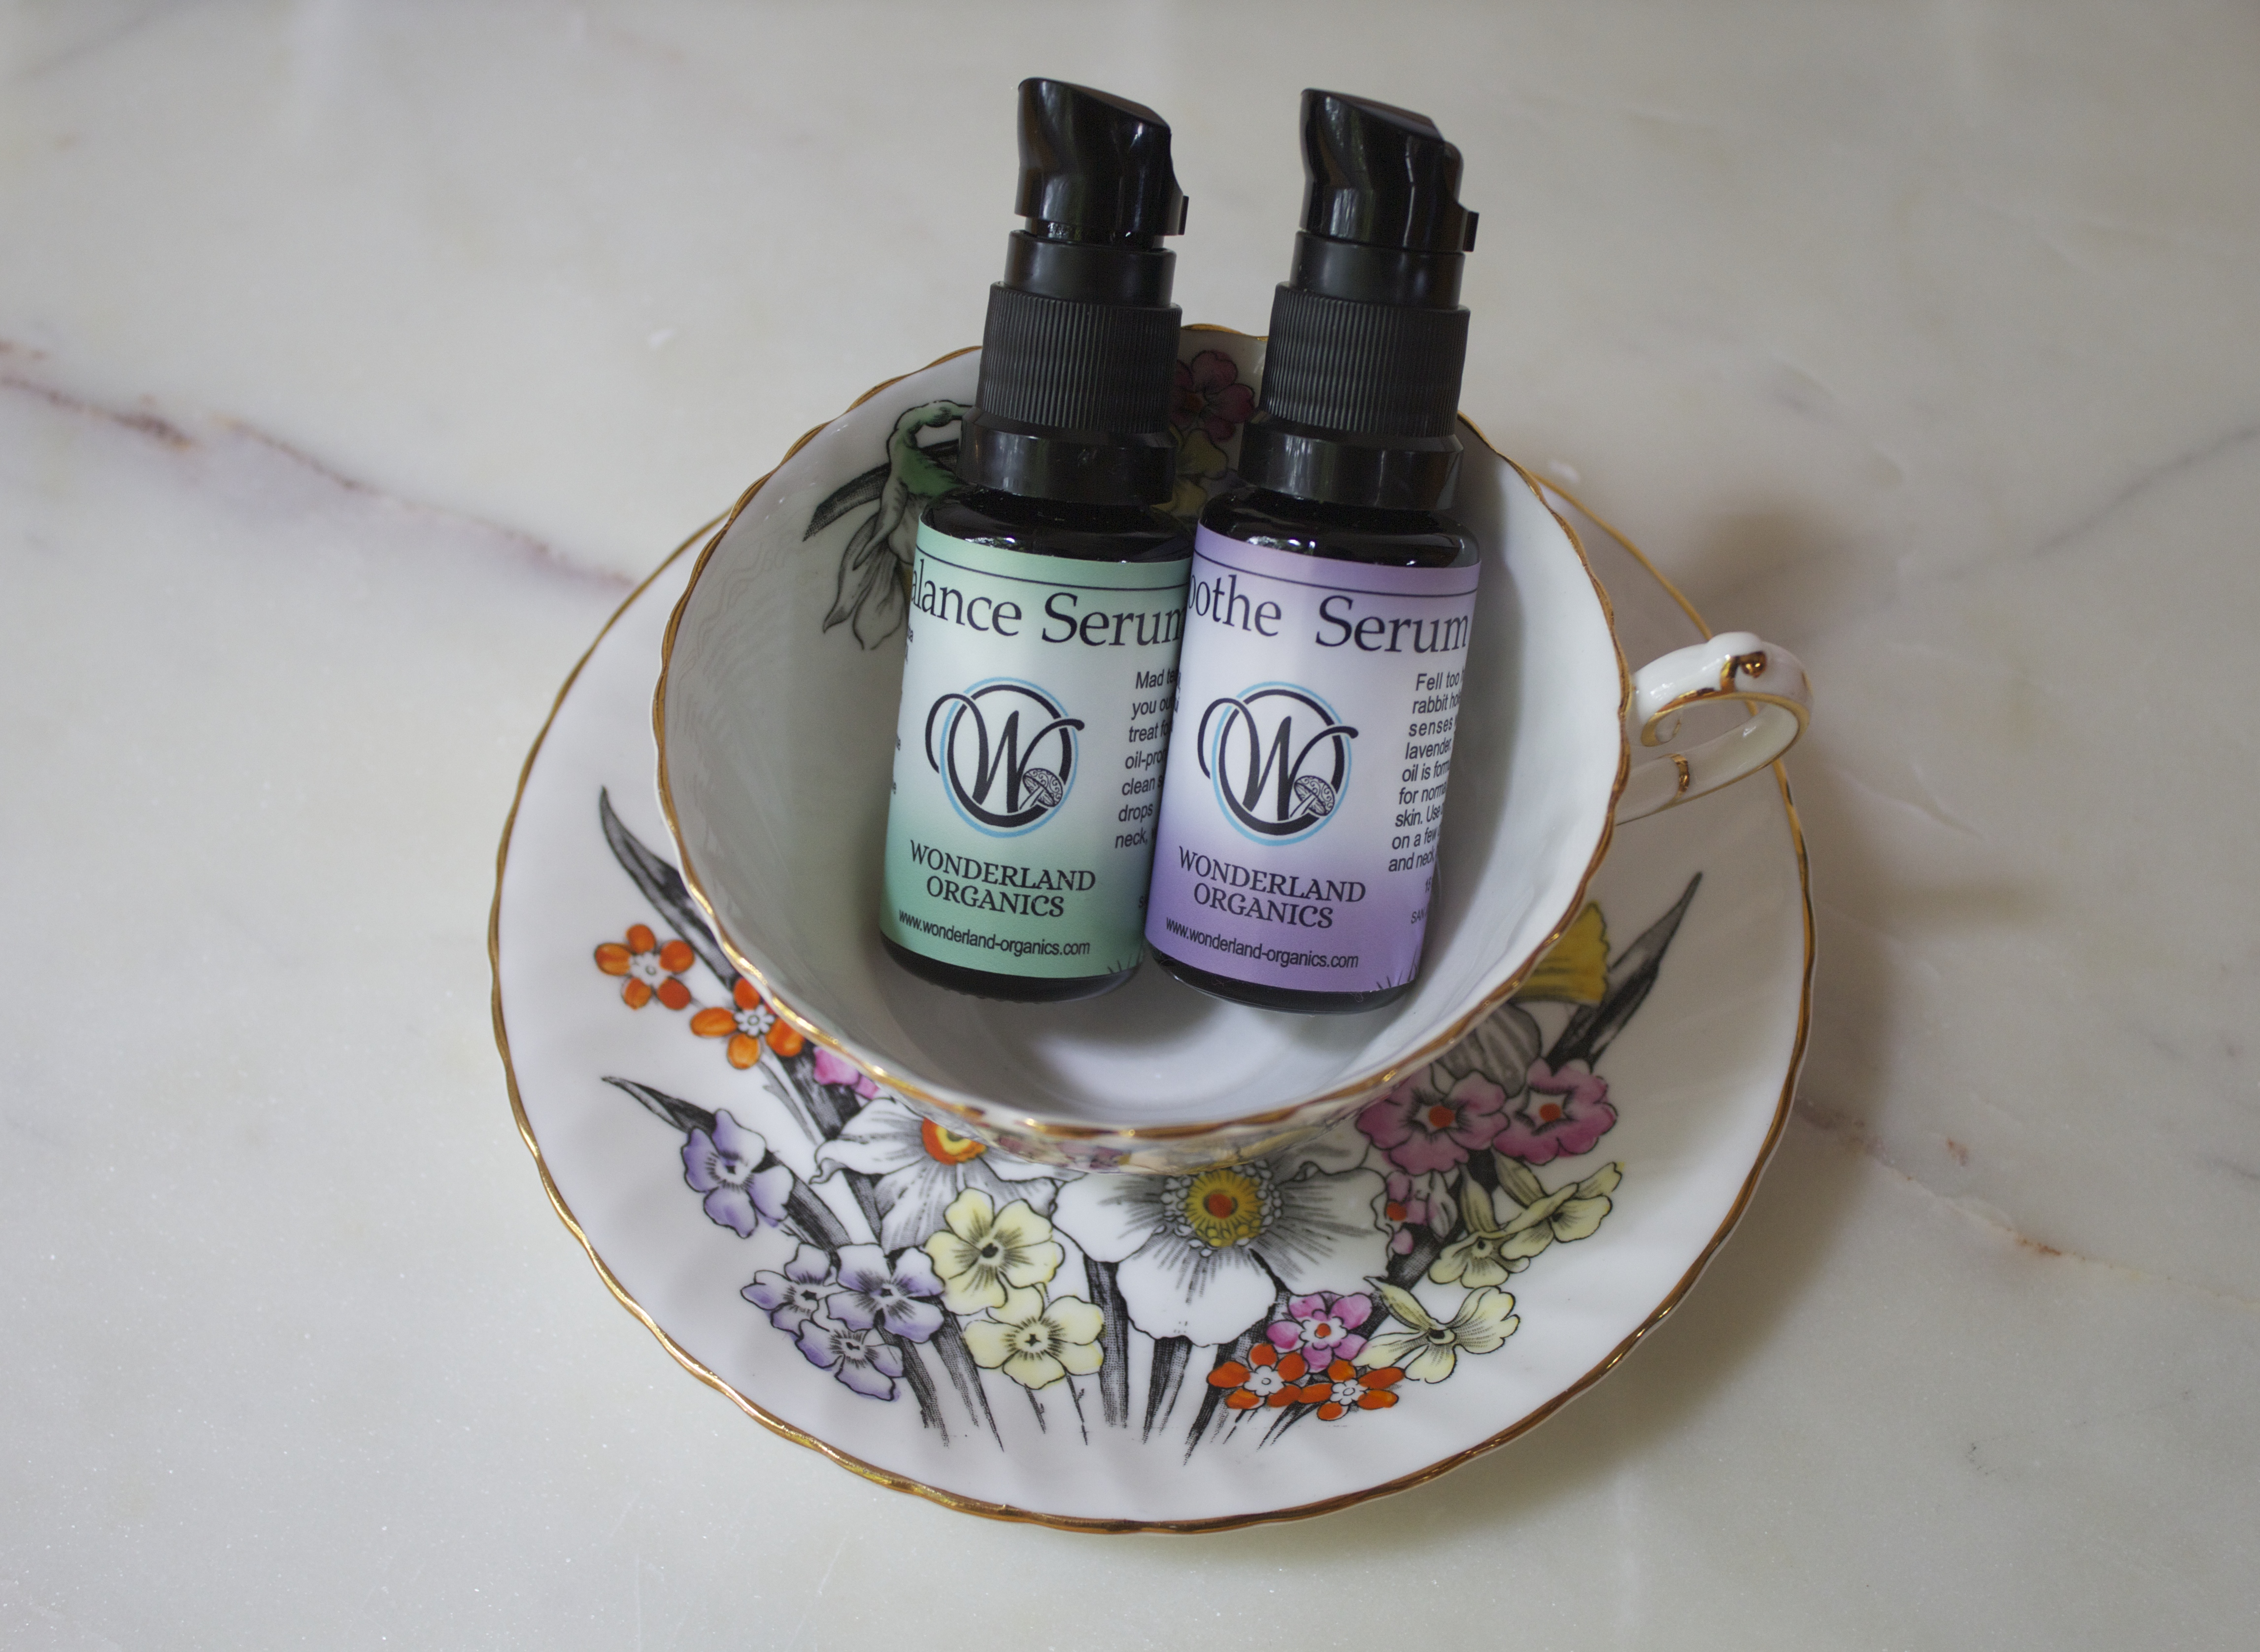 Alice and Wonderland Organics